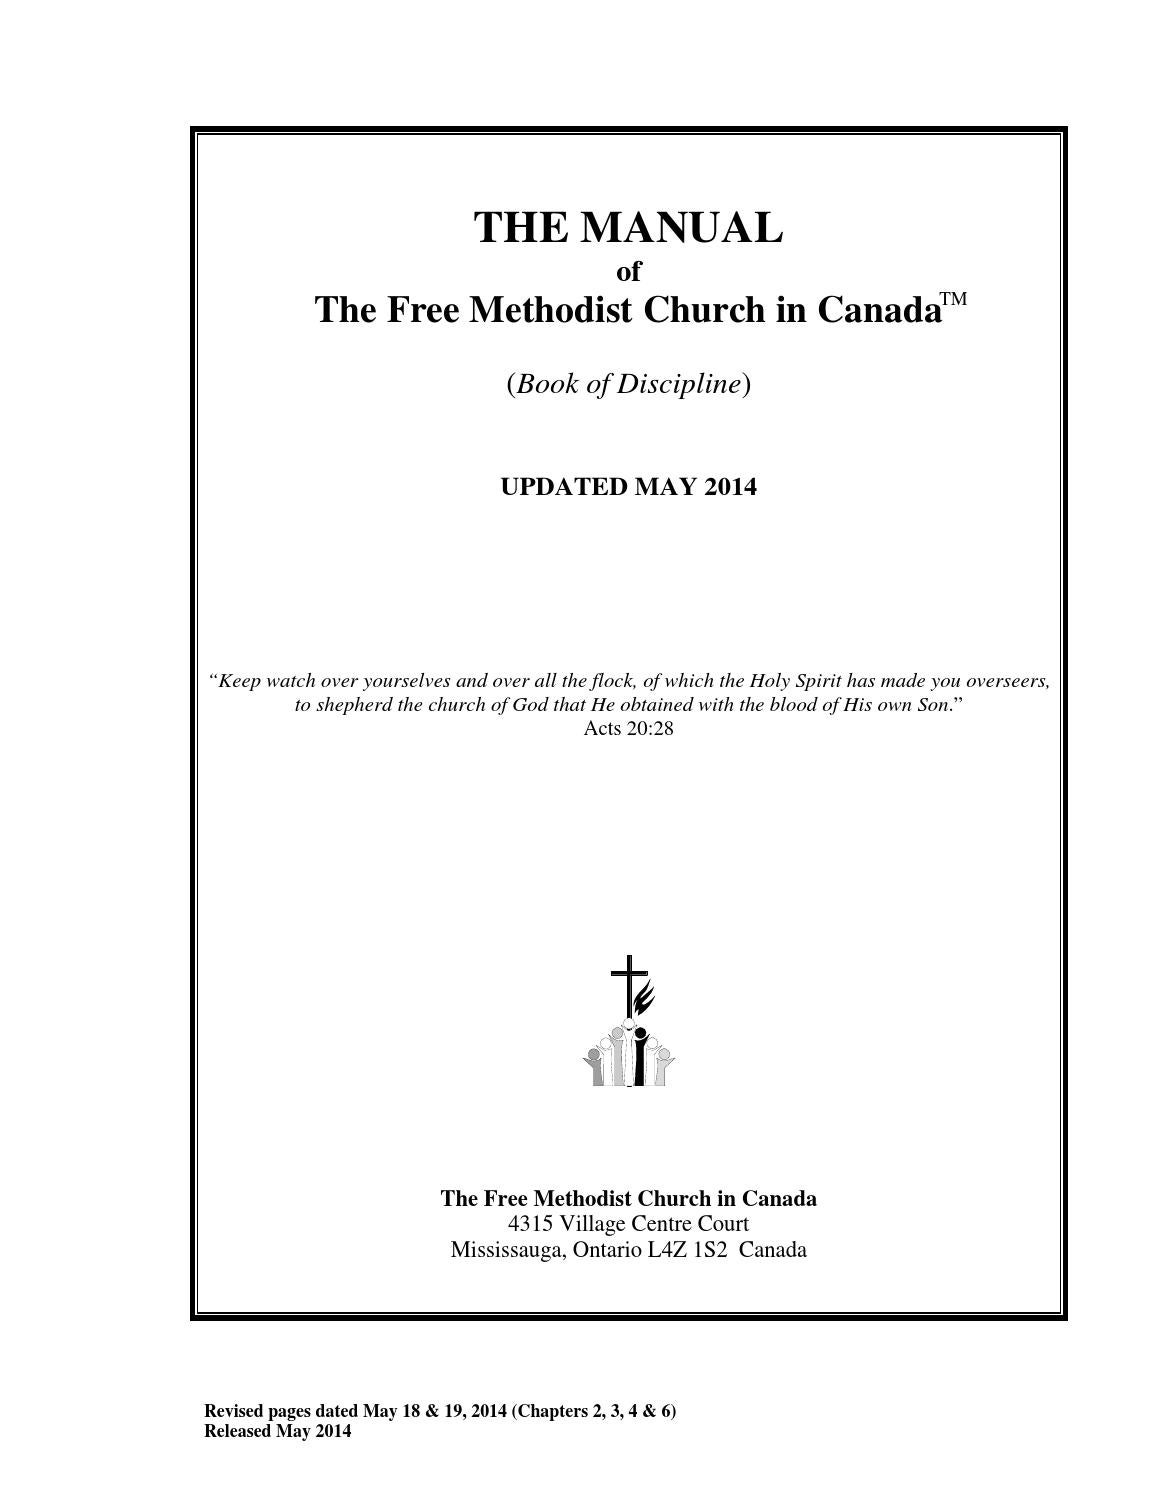 The manual of the free methodist church in canada may 2014 by Free  Methodist Church In Canada - issuu